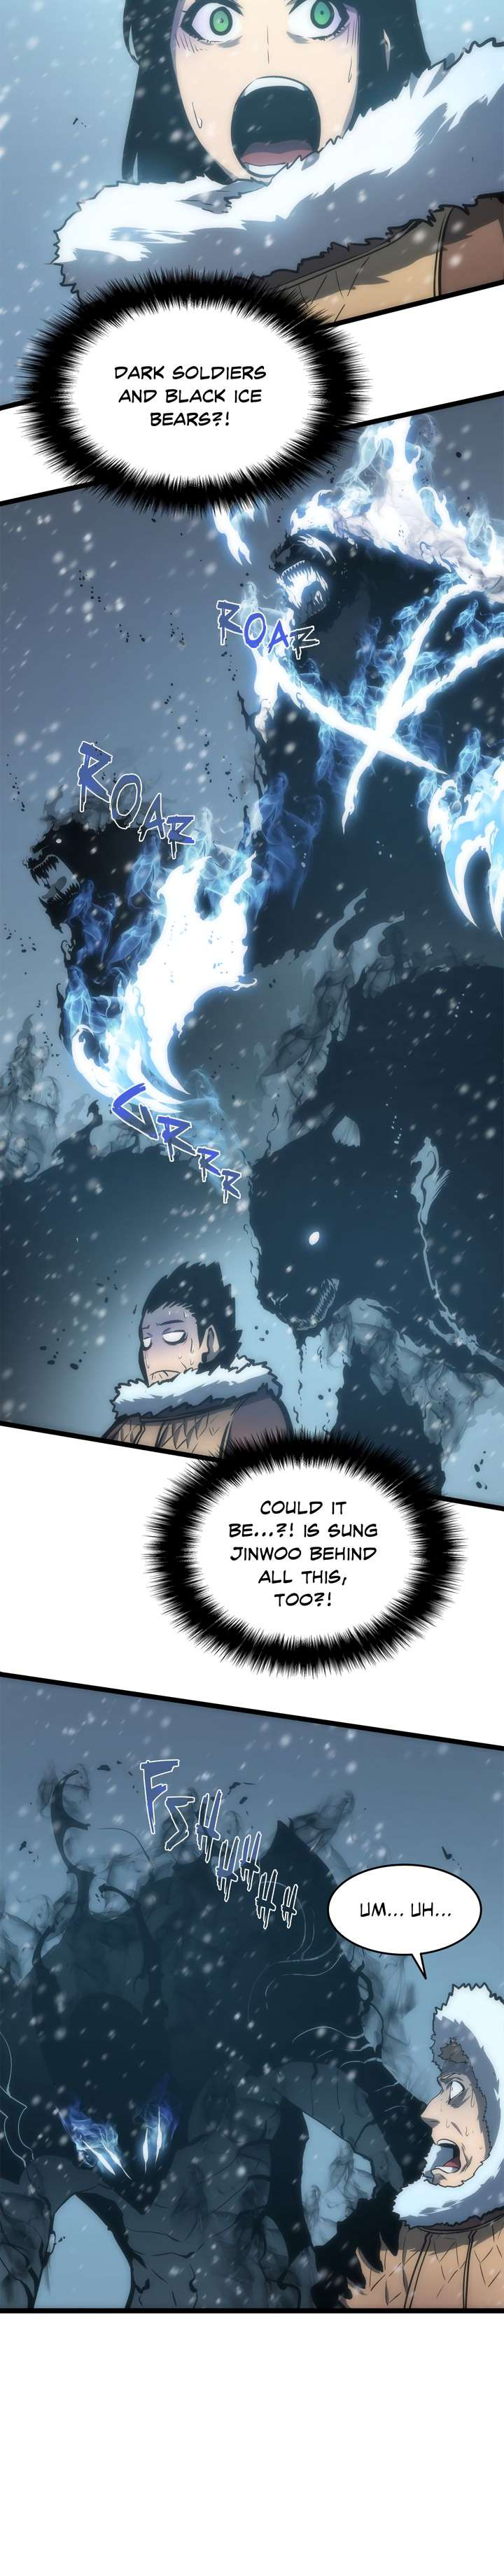 Solo Leveling Chapter 53 Page 13